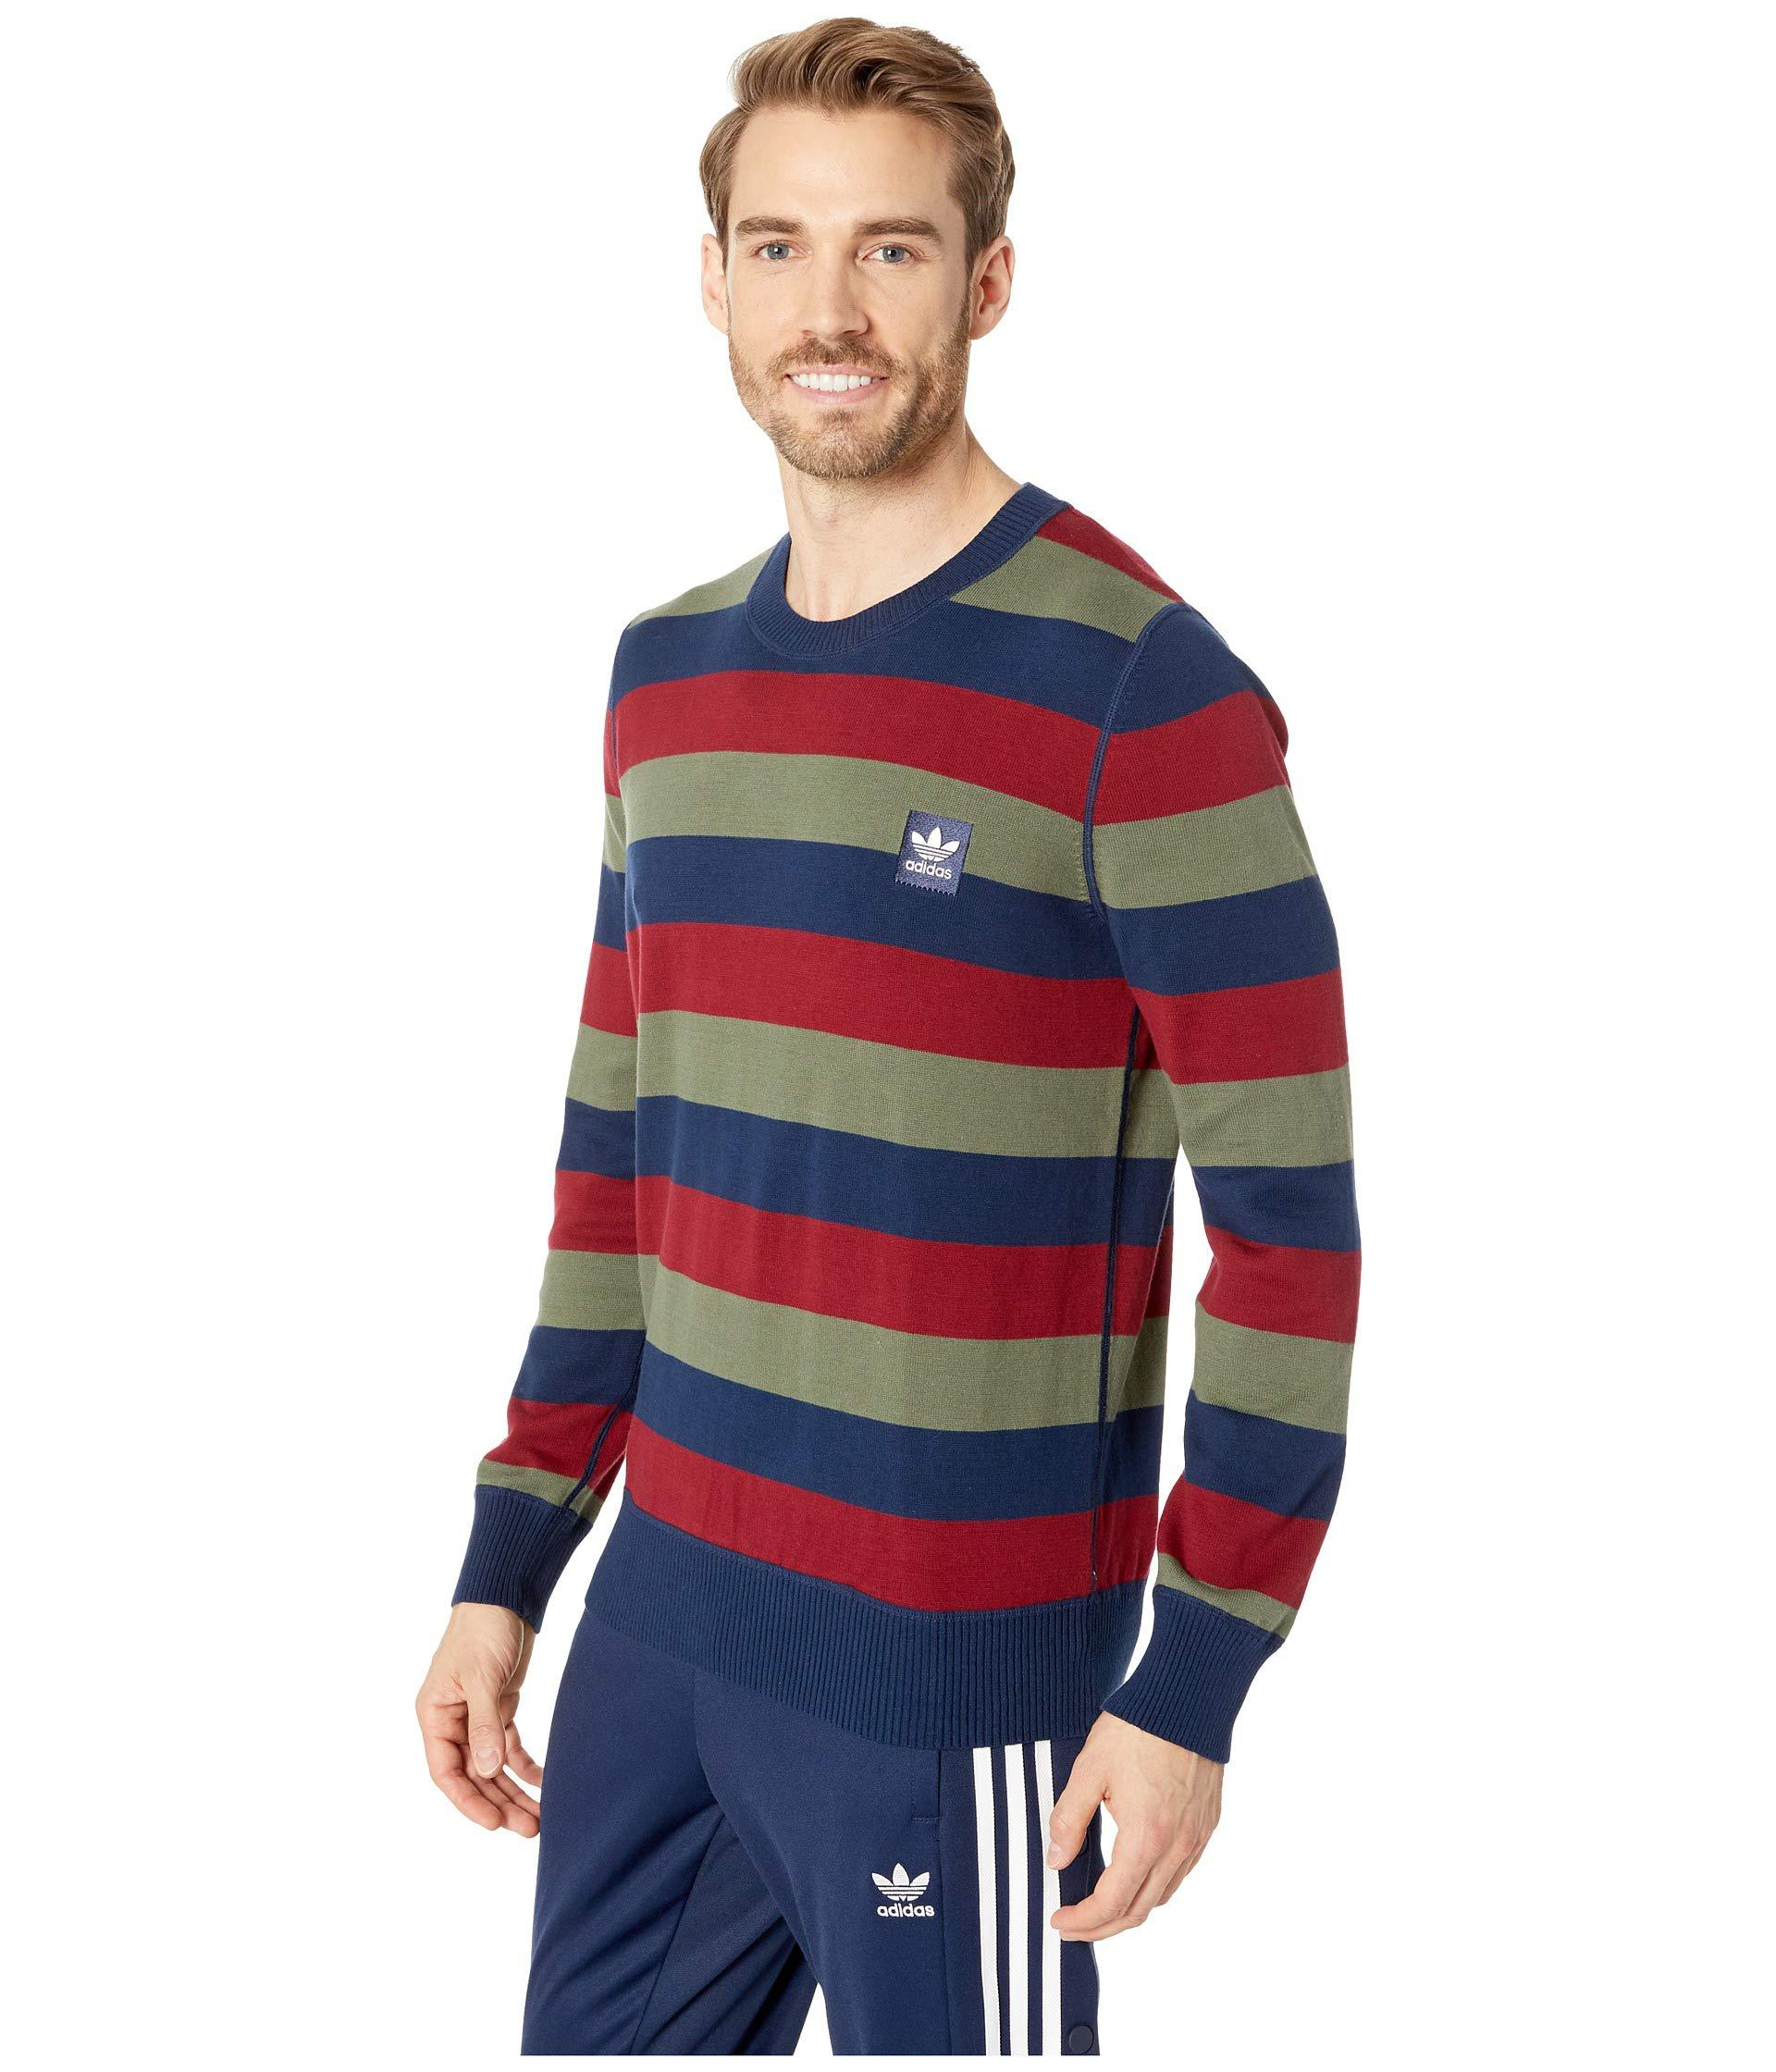 c19b5219aac0 Lyst - adidas Originals Striped Sweater (collegiate Navy collegiate  Burgundy base Green) Men s Long Sleeve Pullover in Blue for Men